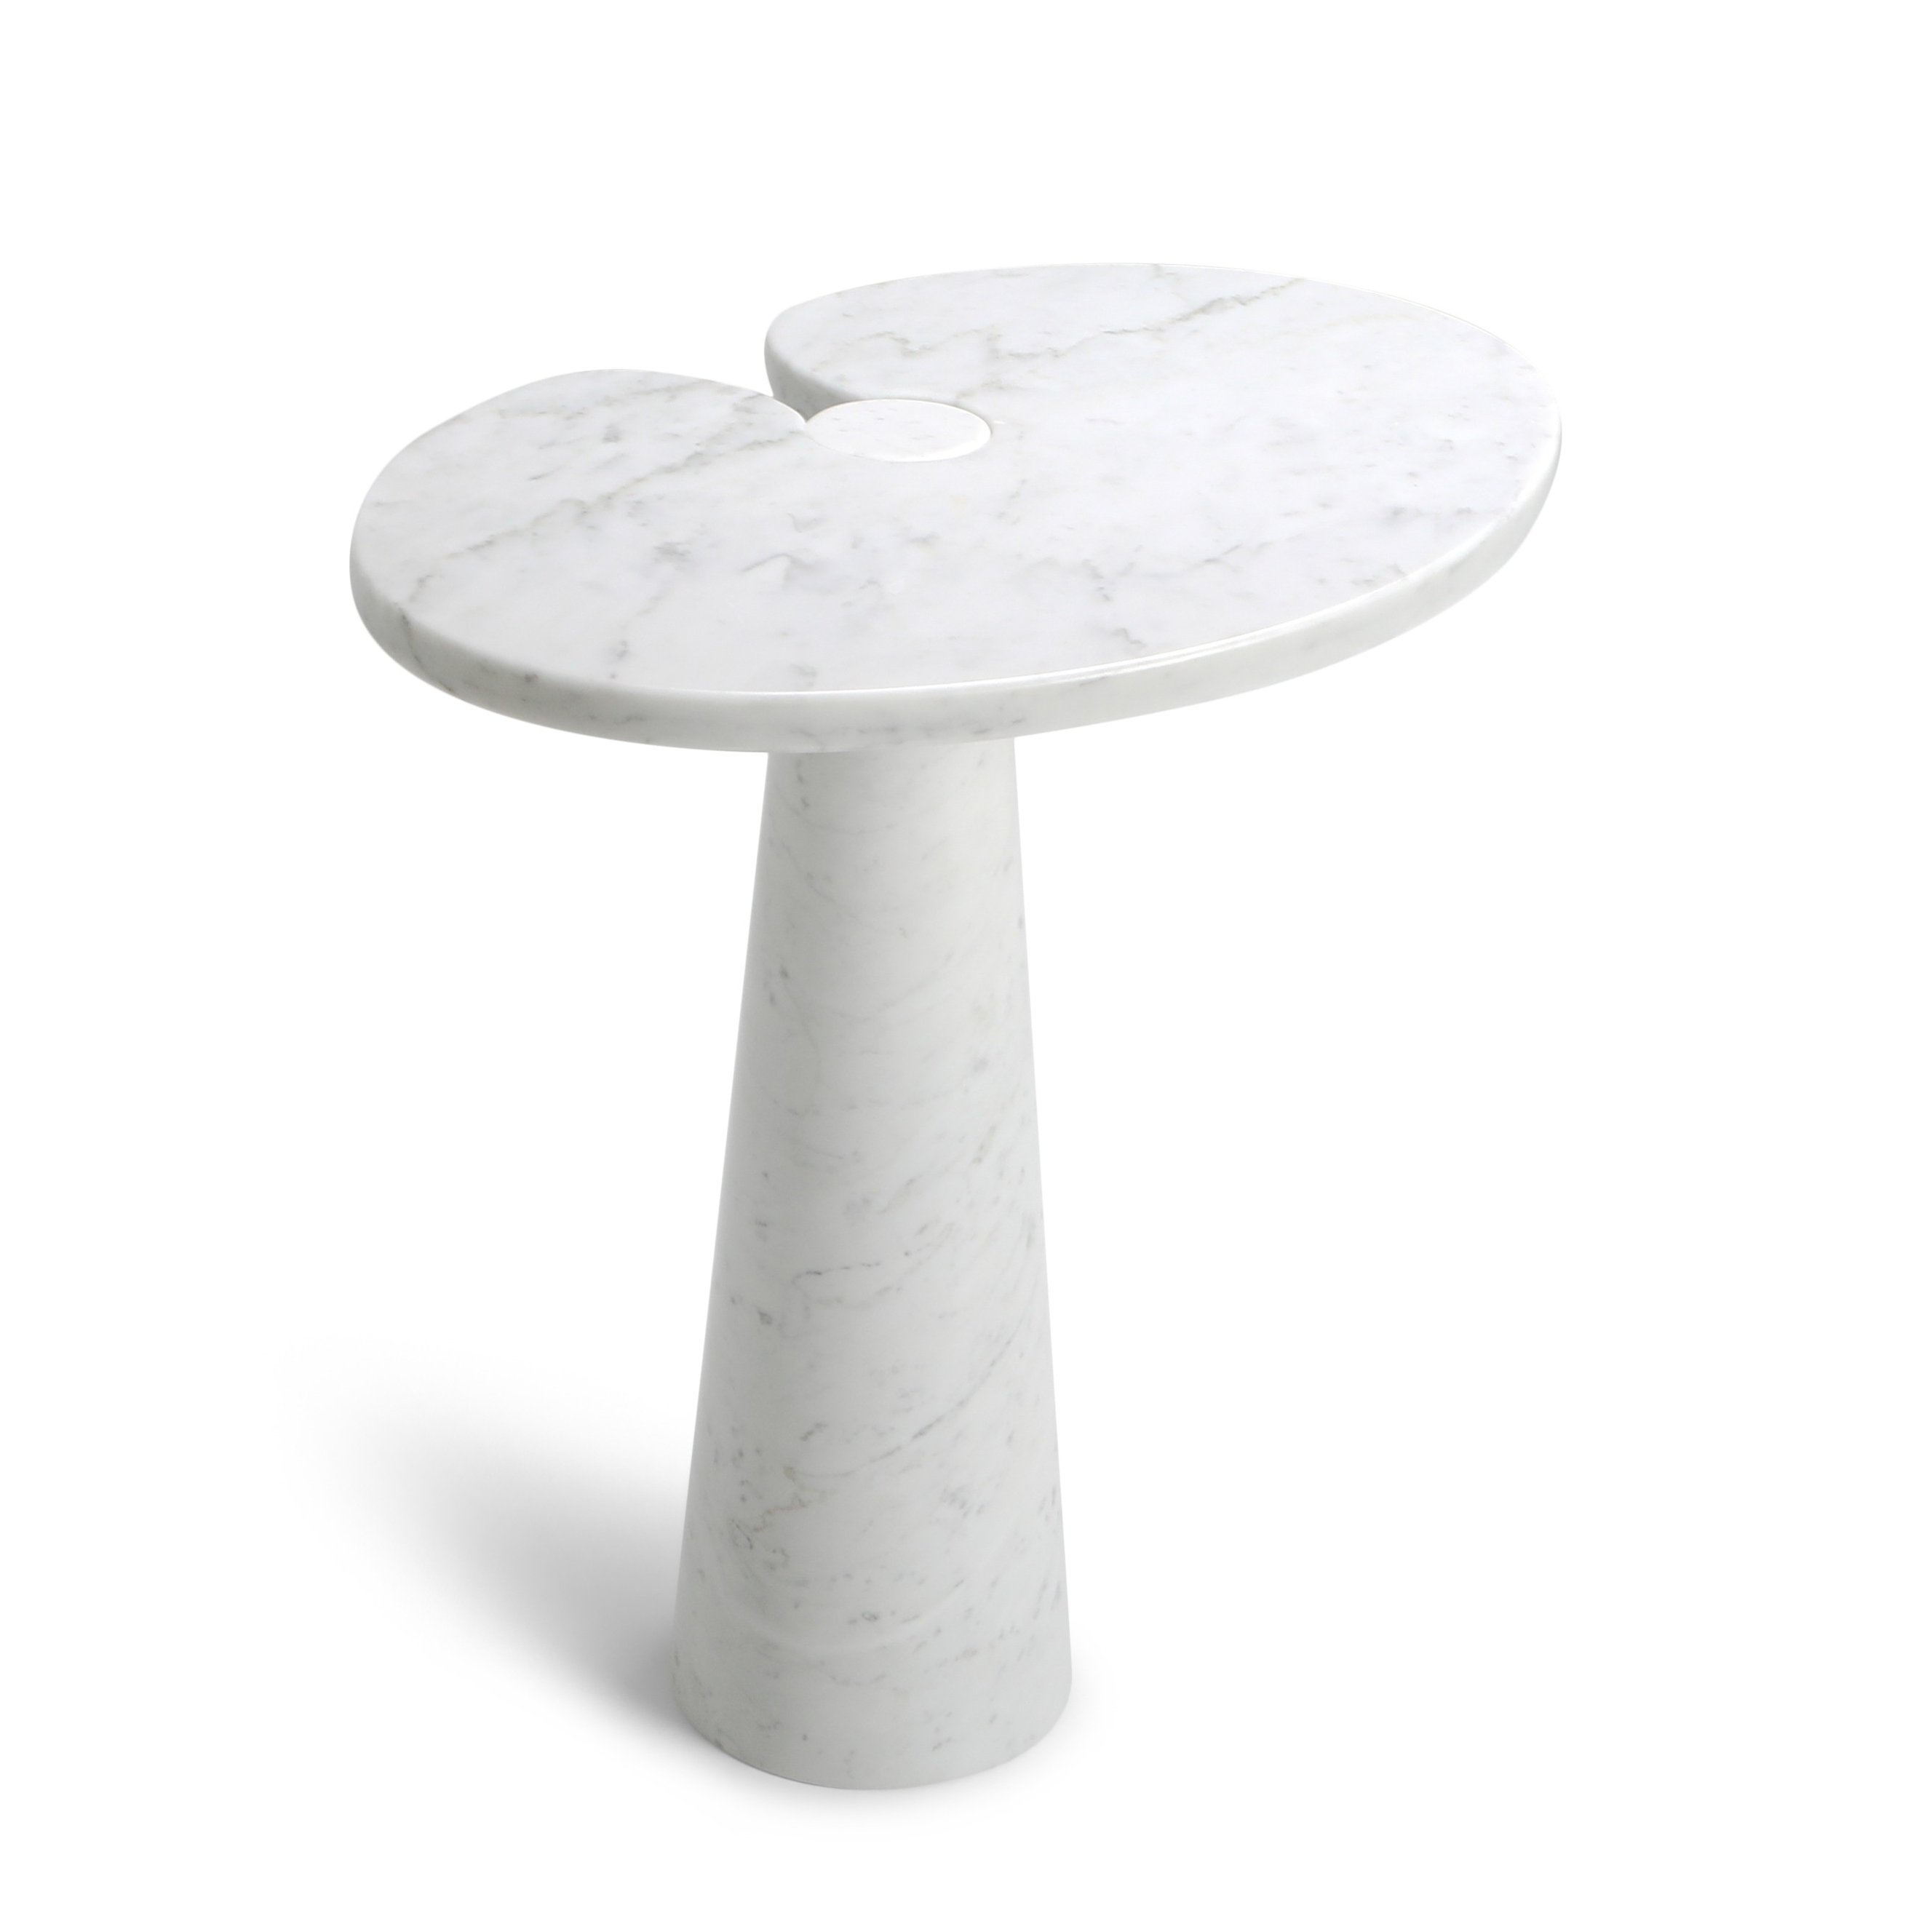 Eros White Carrara Marble Side Table By Angelo Mangiarotti For Skipper 1970s 116359